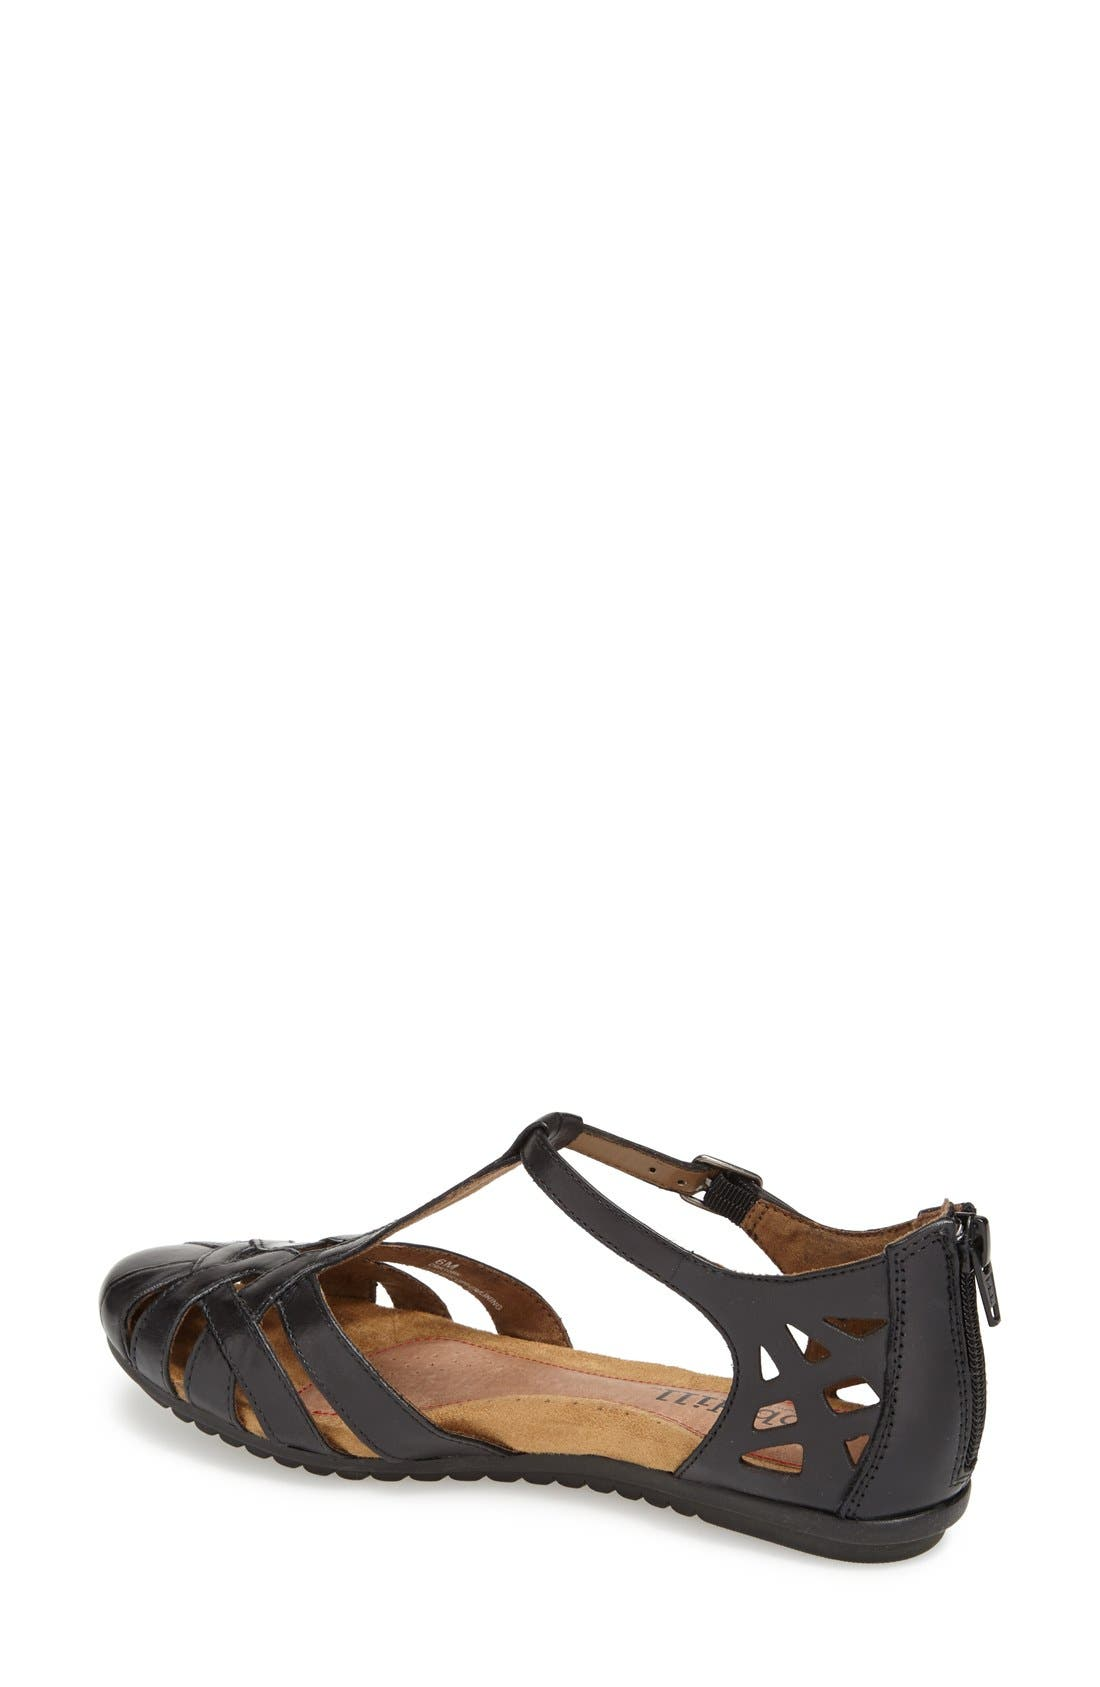 'Ireland' Leather Sandal,                             Alternate thumbnail 3, color,                             BLACK